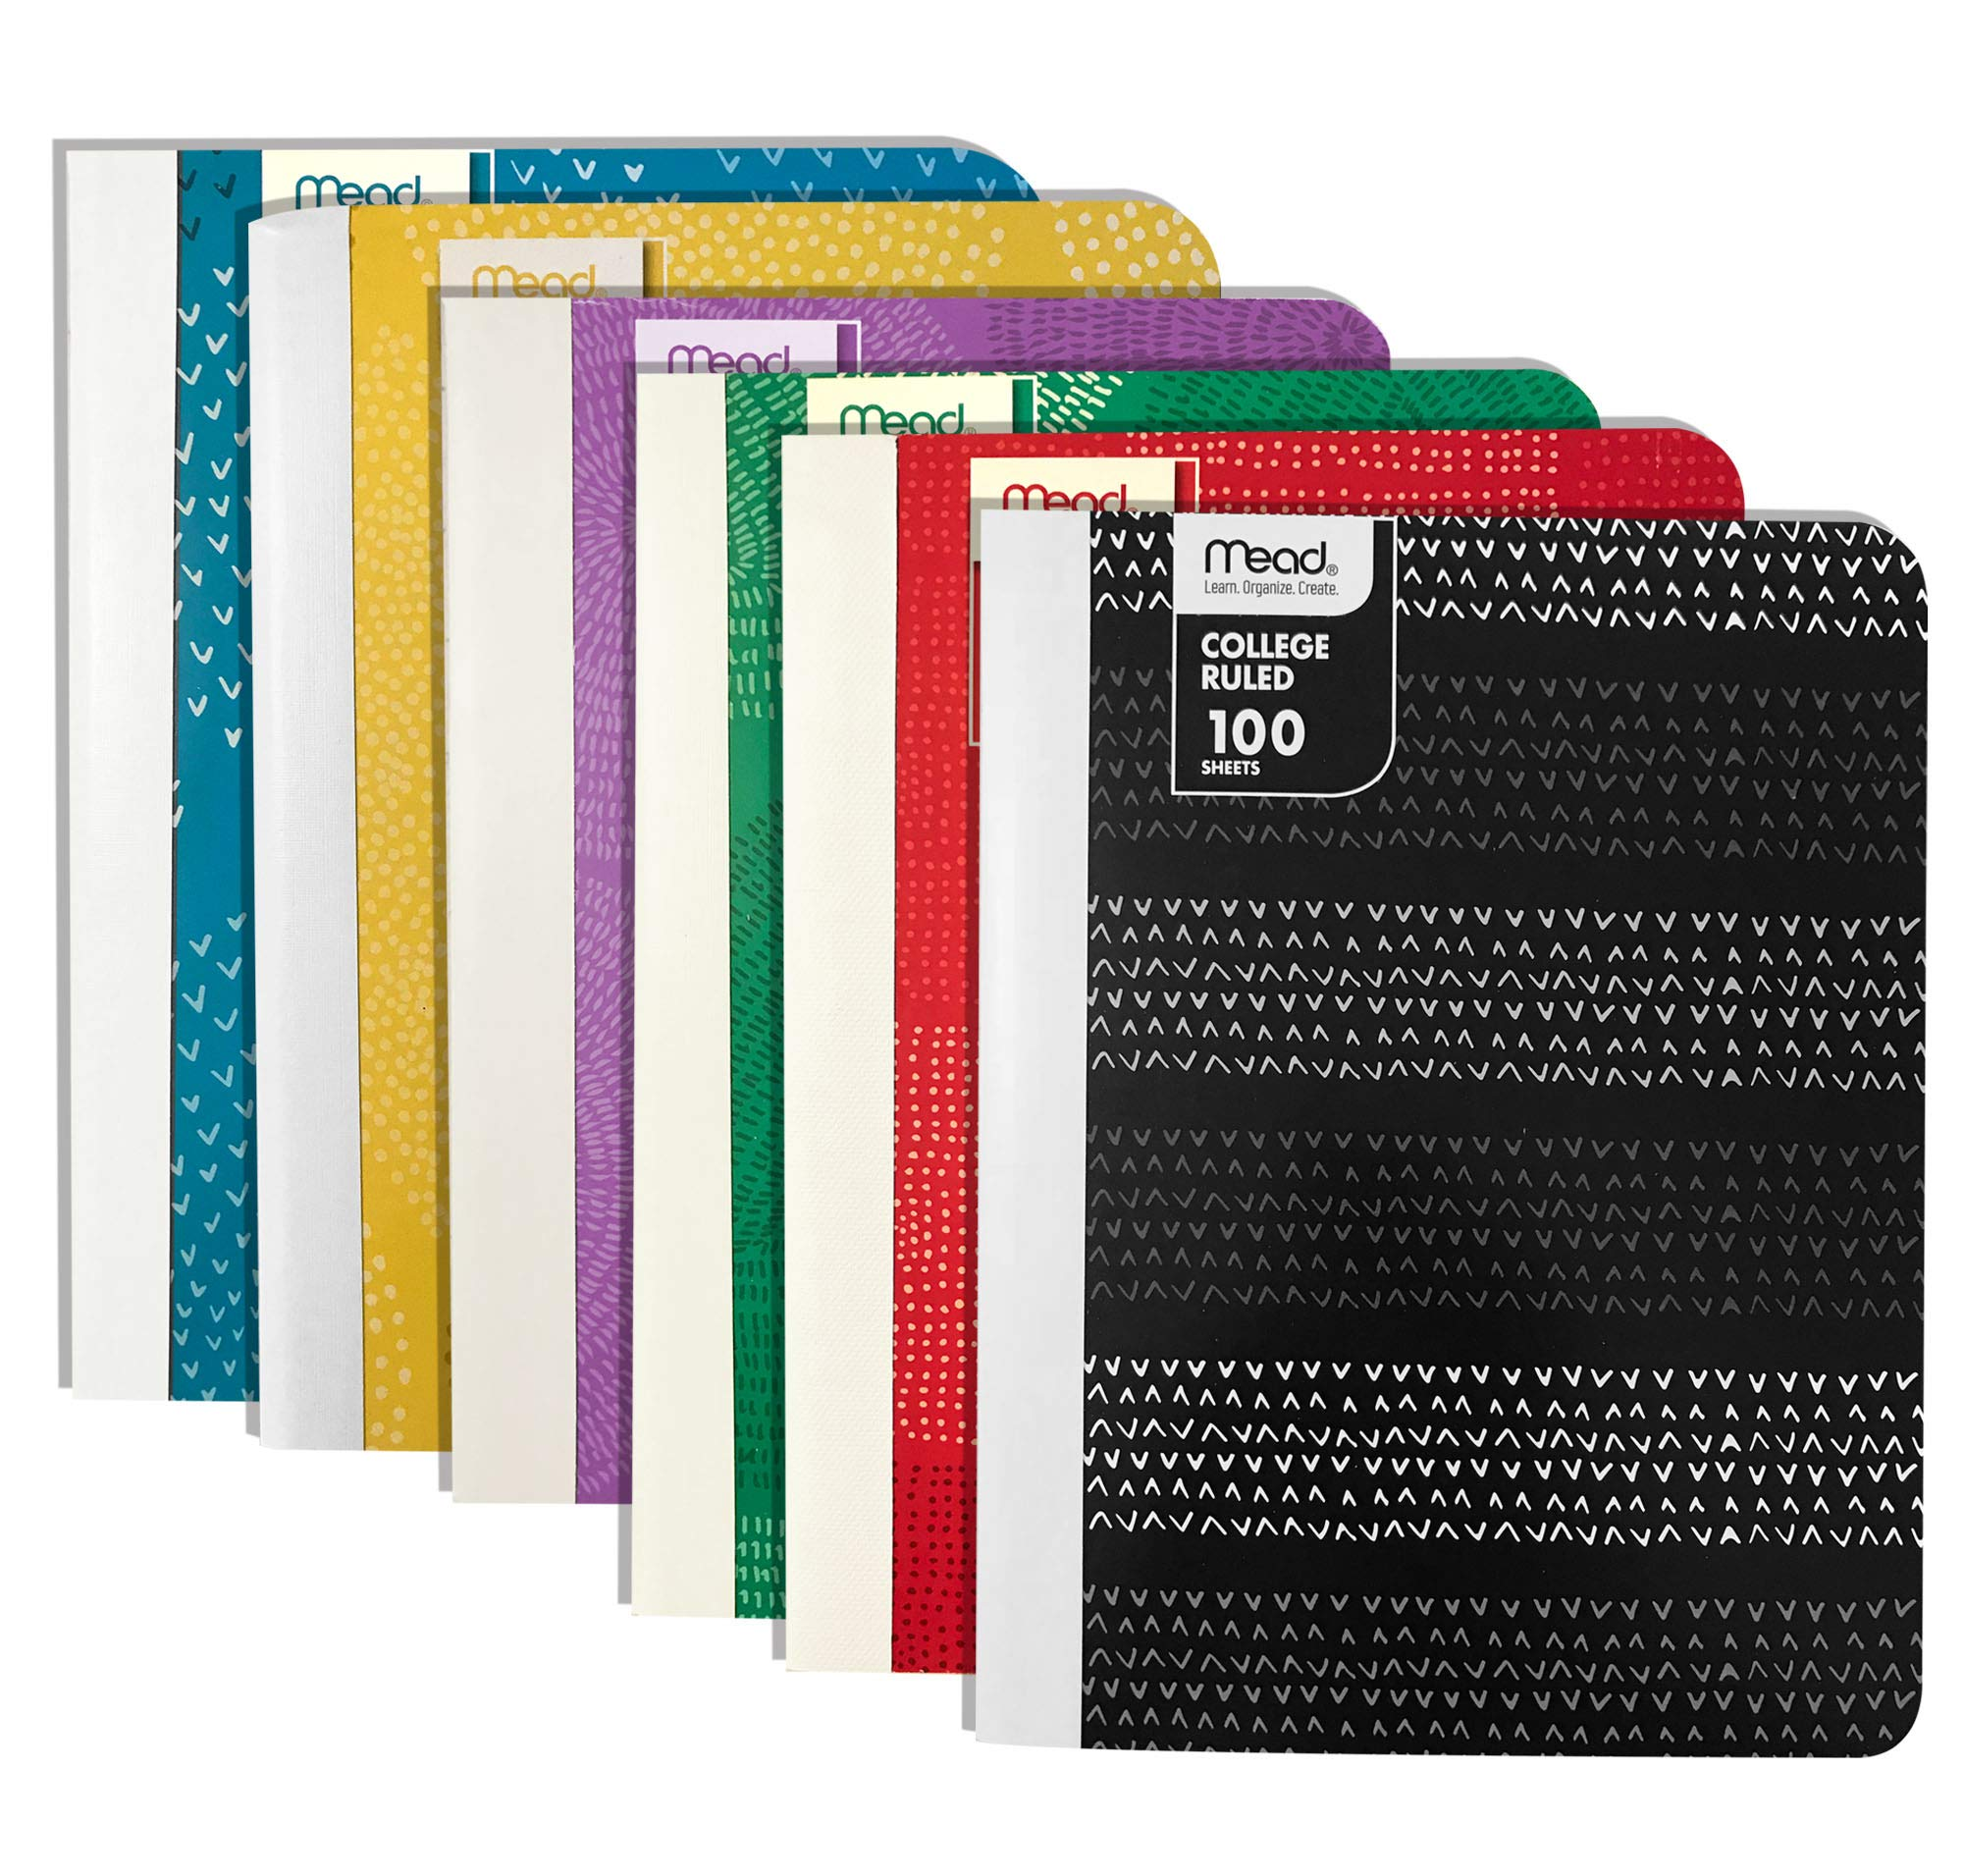 Mead Composition Notebook, 100 sheets, 9-3/4 x 7-1/2 inches (Dots & Lines, College Ruled)